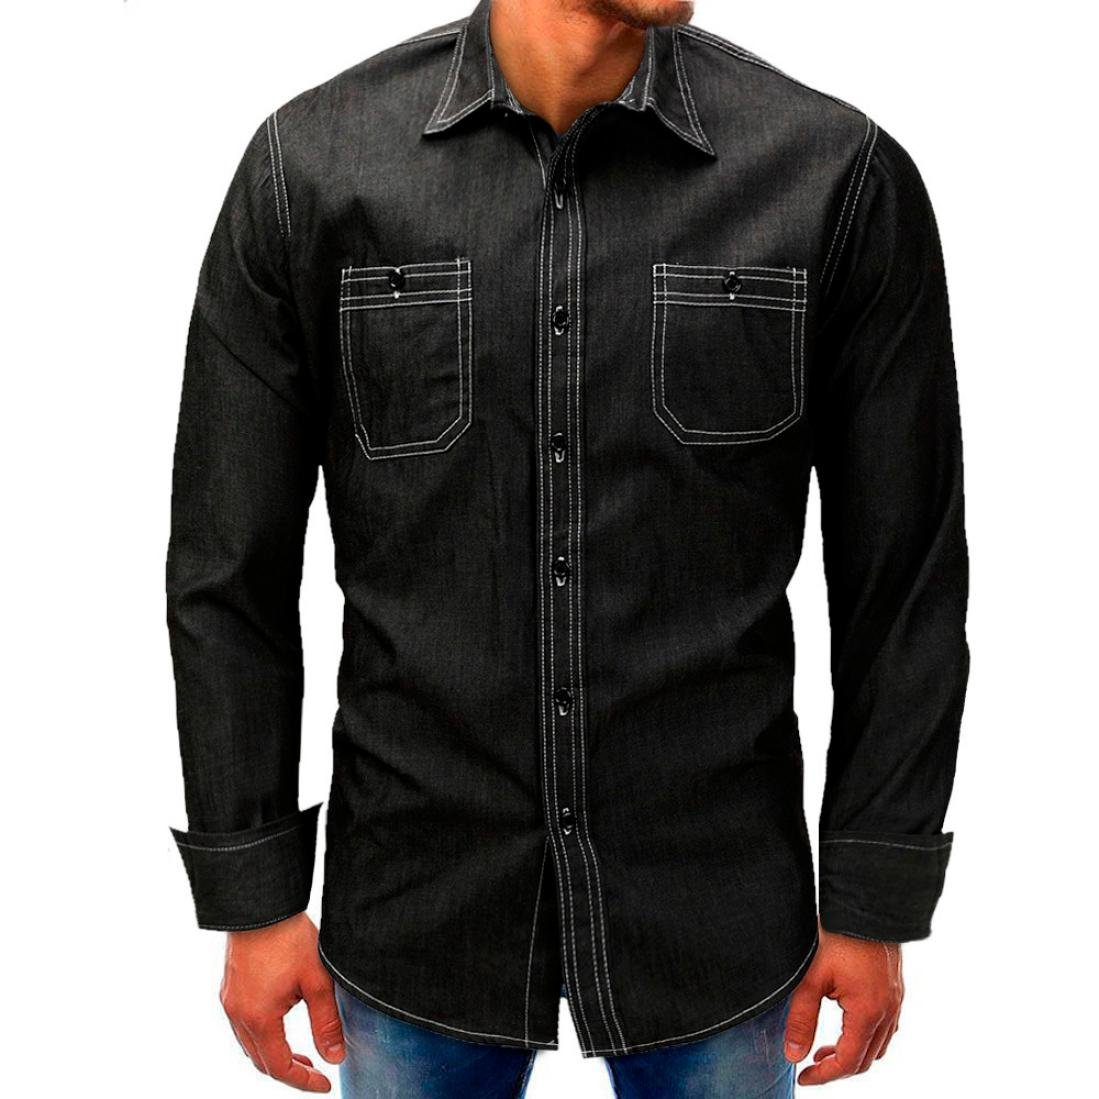 Clearance Sale! Wintialy Men Denim Long-Sleeve Beefy Button Basic Solid Blouse Tee Shirt Top